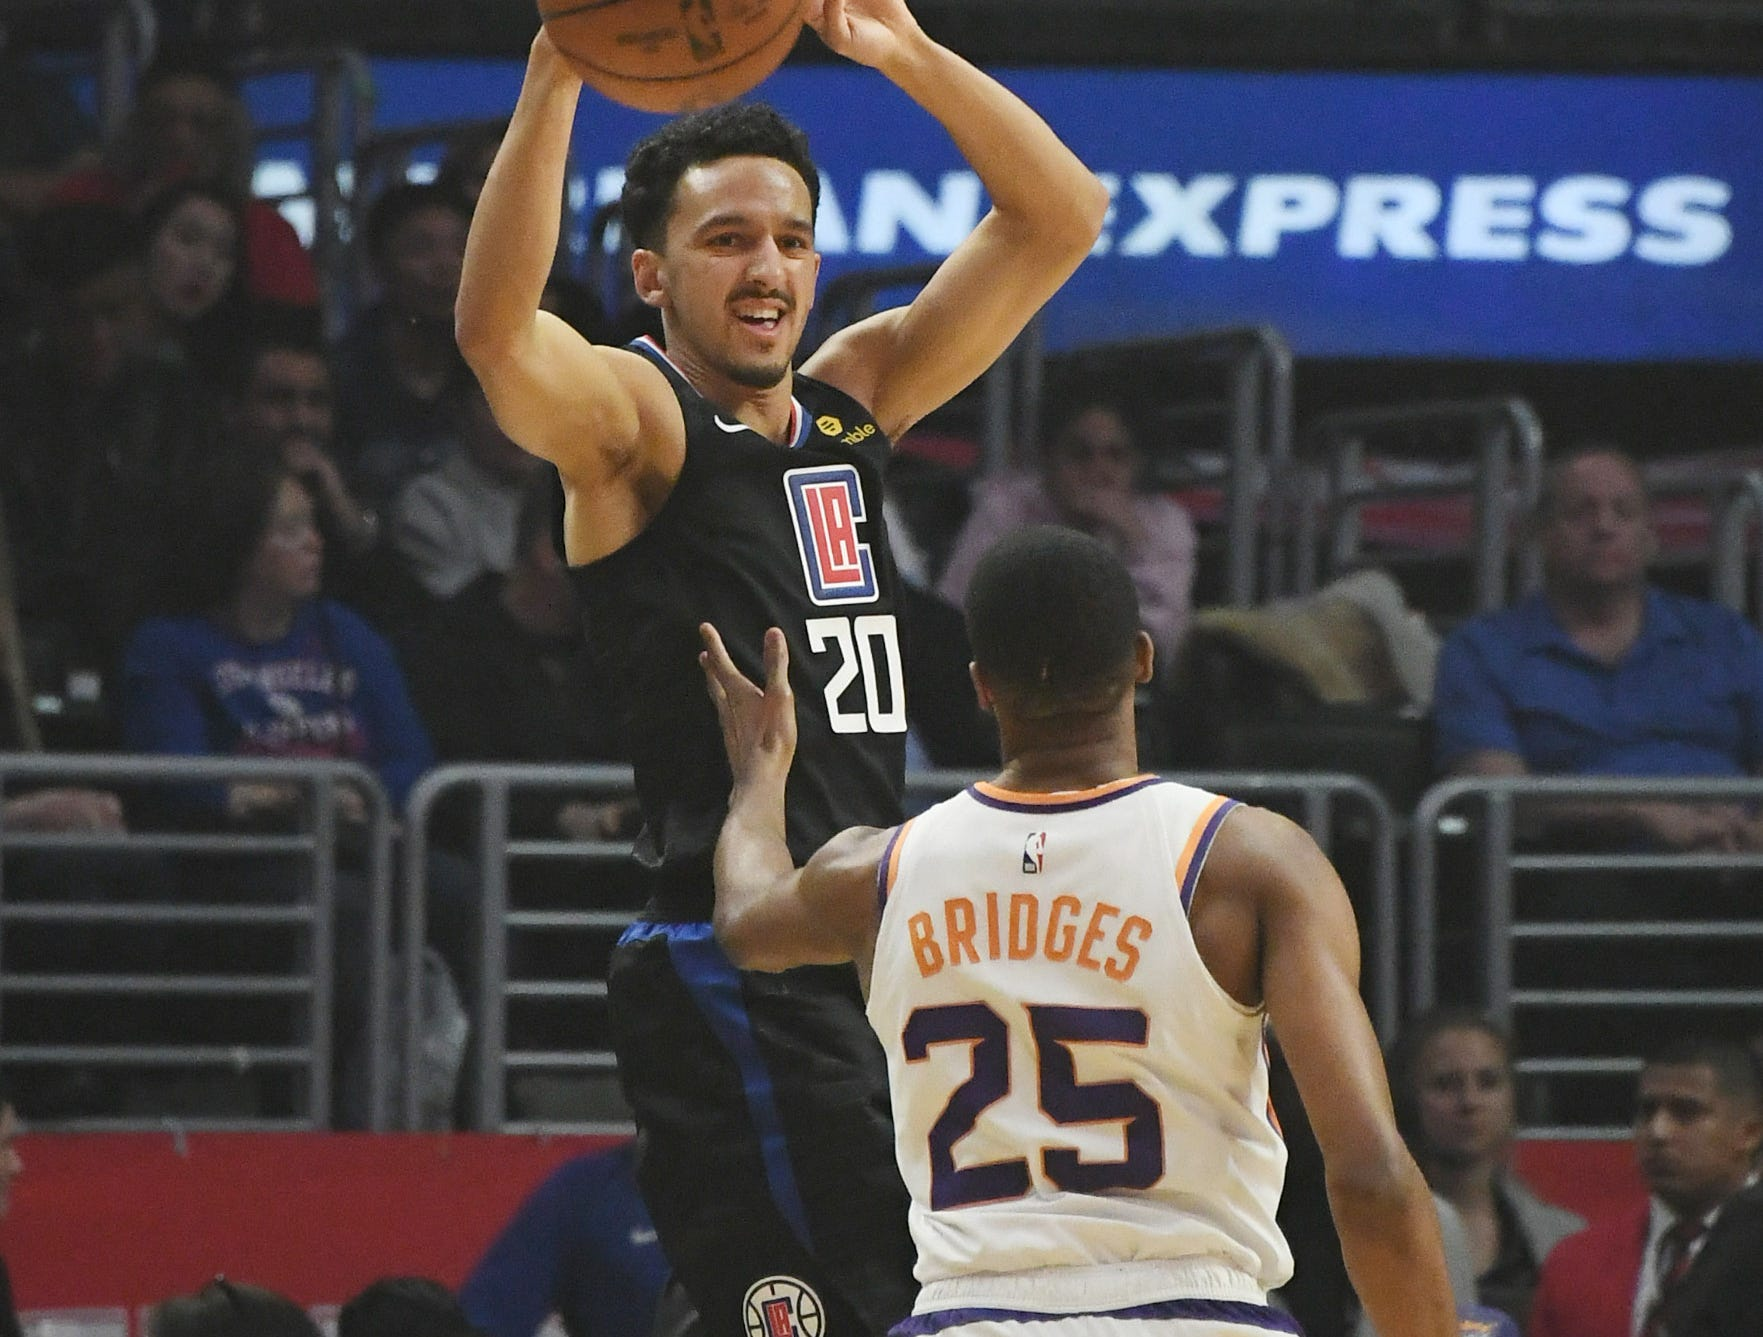 Feb 13, 2019; Los Angeles, CA, USA; LA Clippers guard Landry Shamet (20) passes the ball away from Phoenix Suns forward Mikal Bridges (25) in the first half at Staples Center. Mandatory Credit: Richard Mackson-USA TODAY Sports